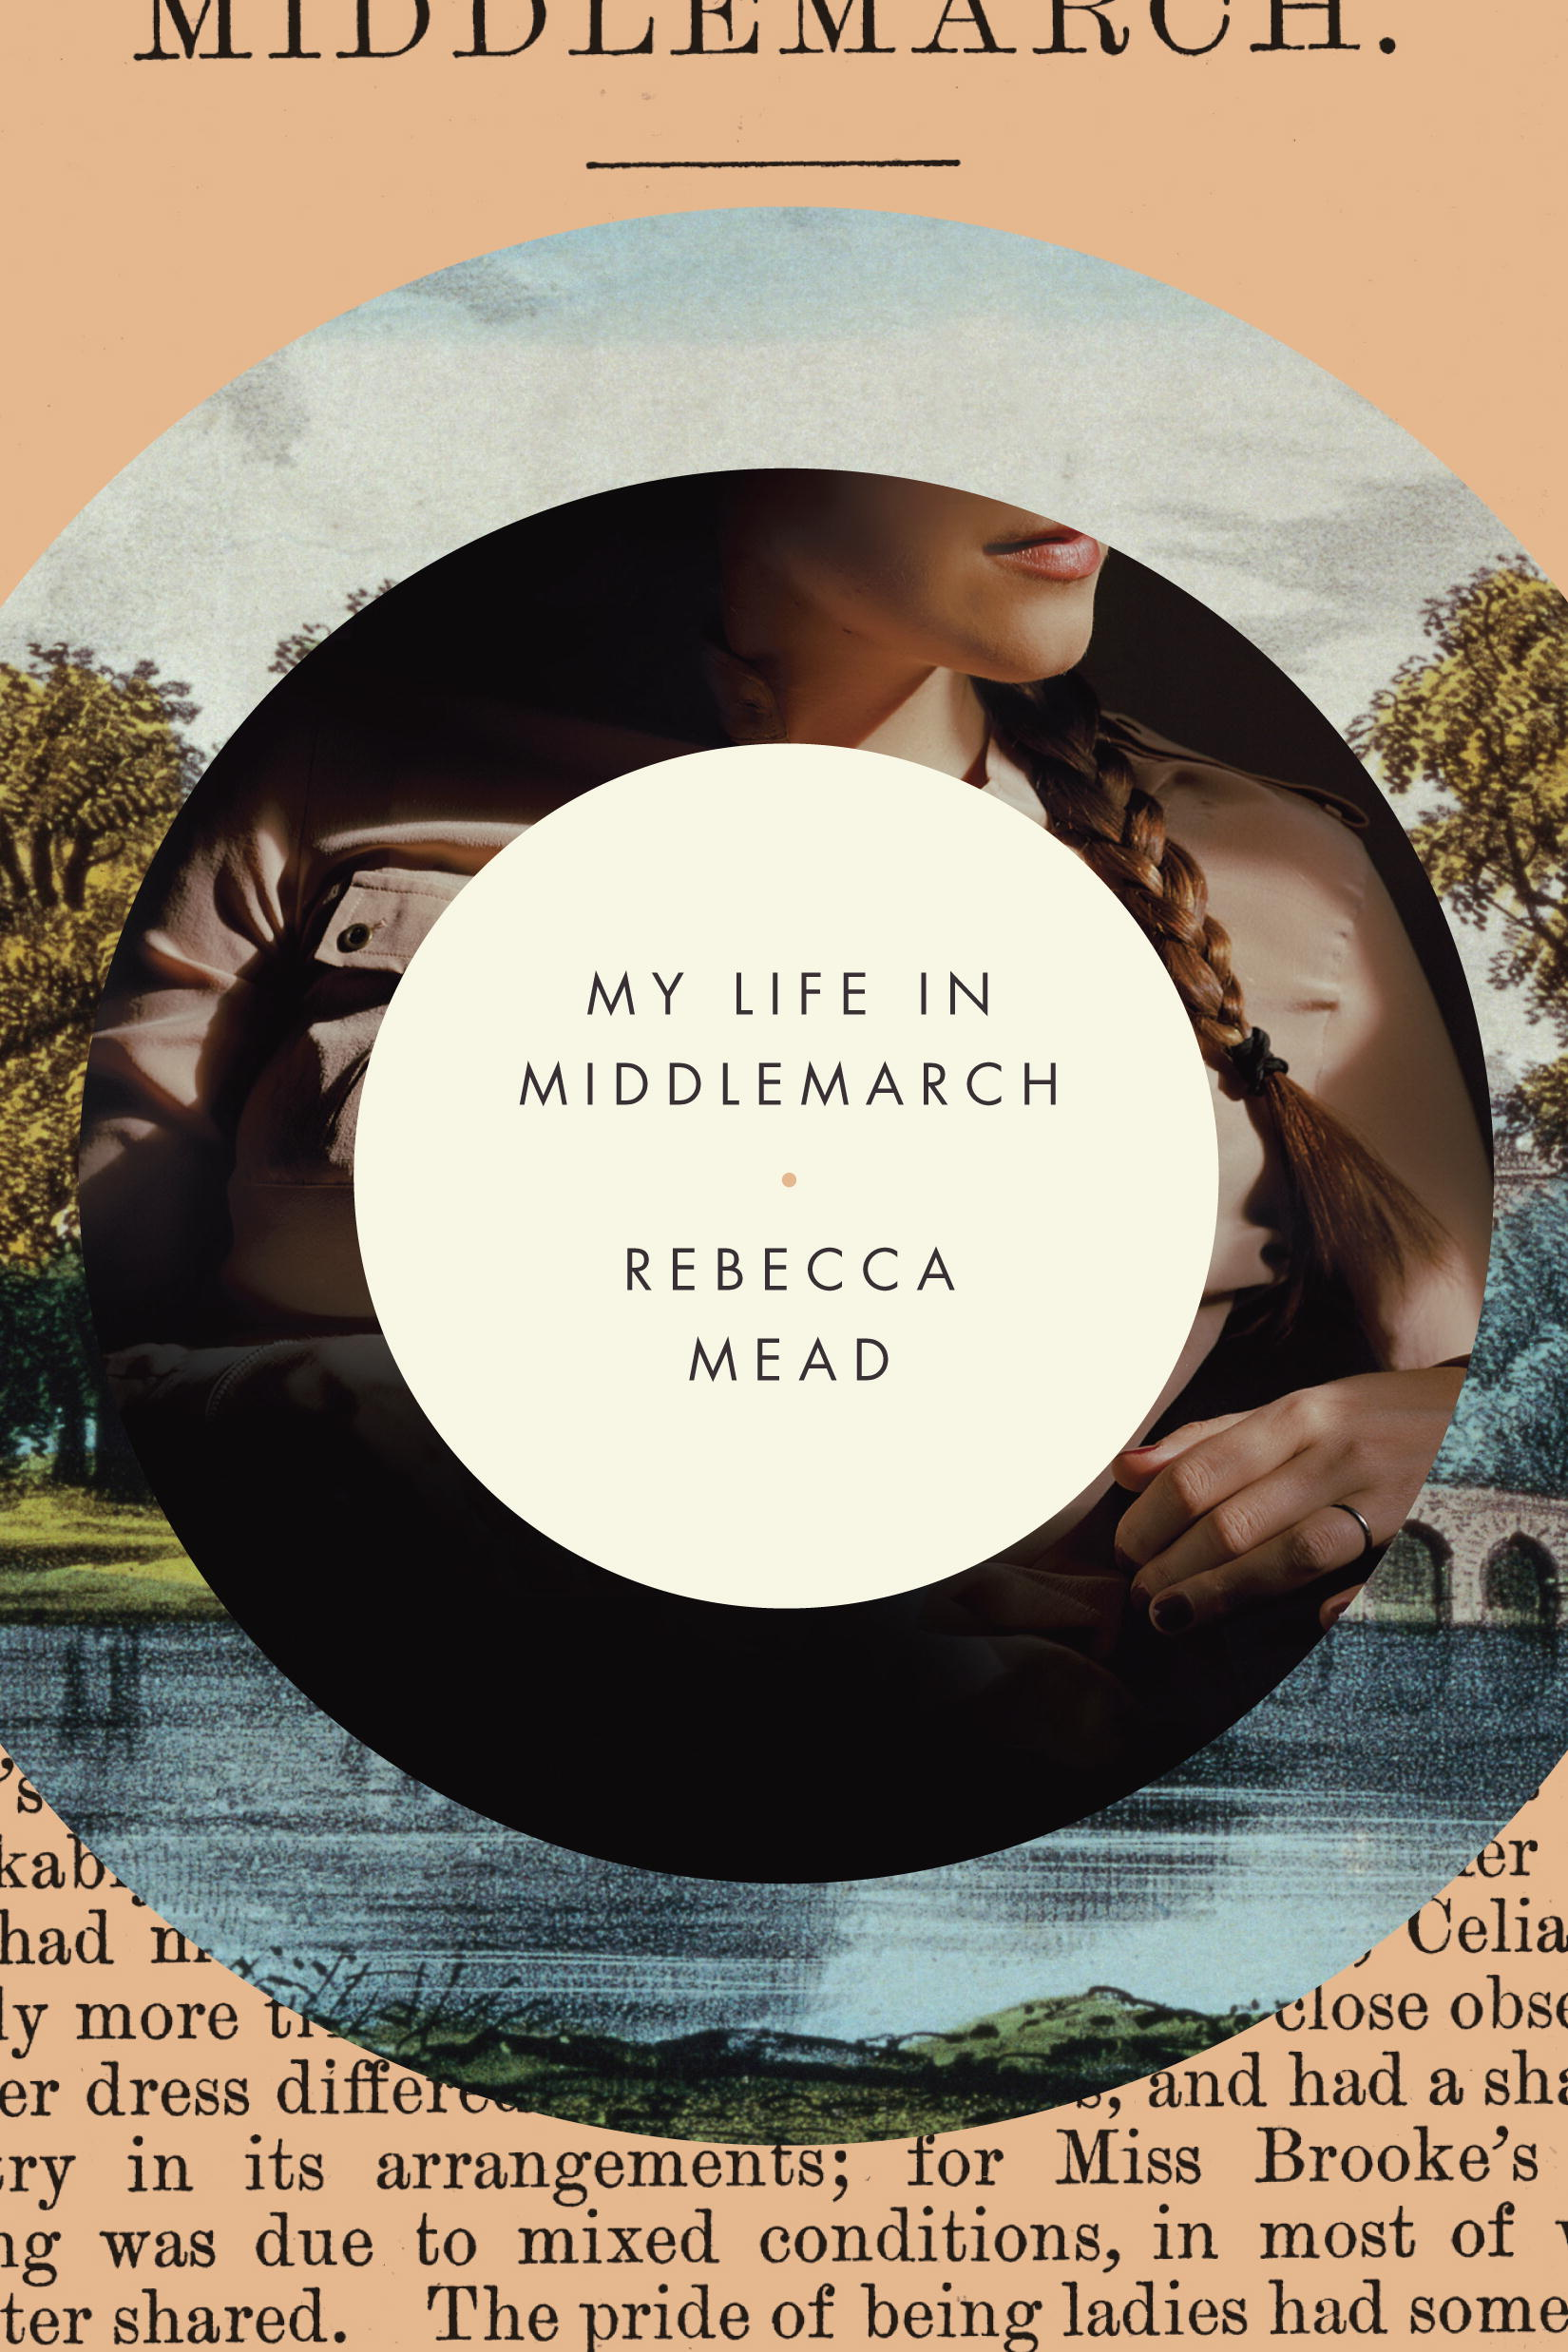 My-Life-in-Middlemarch-by-Rebecca-Mead1.jpg